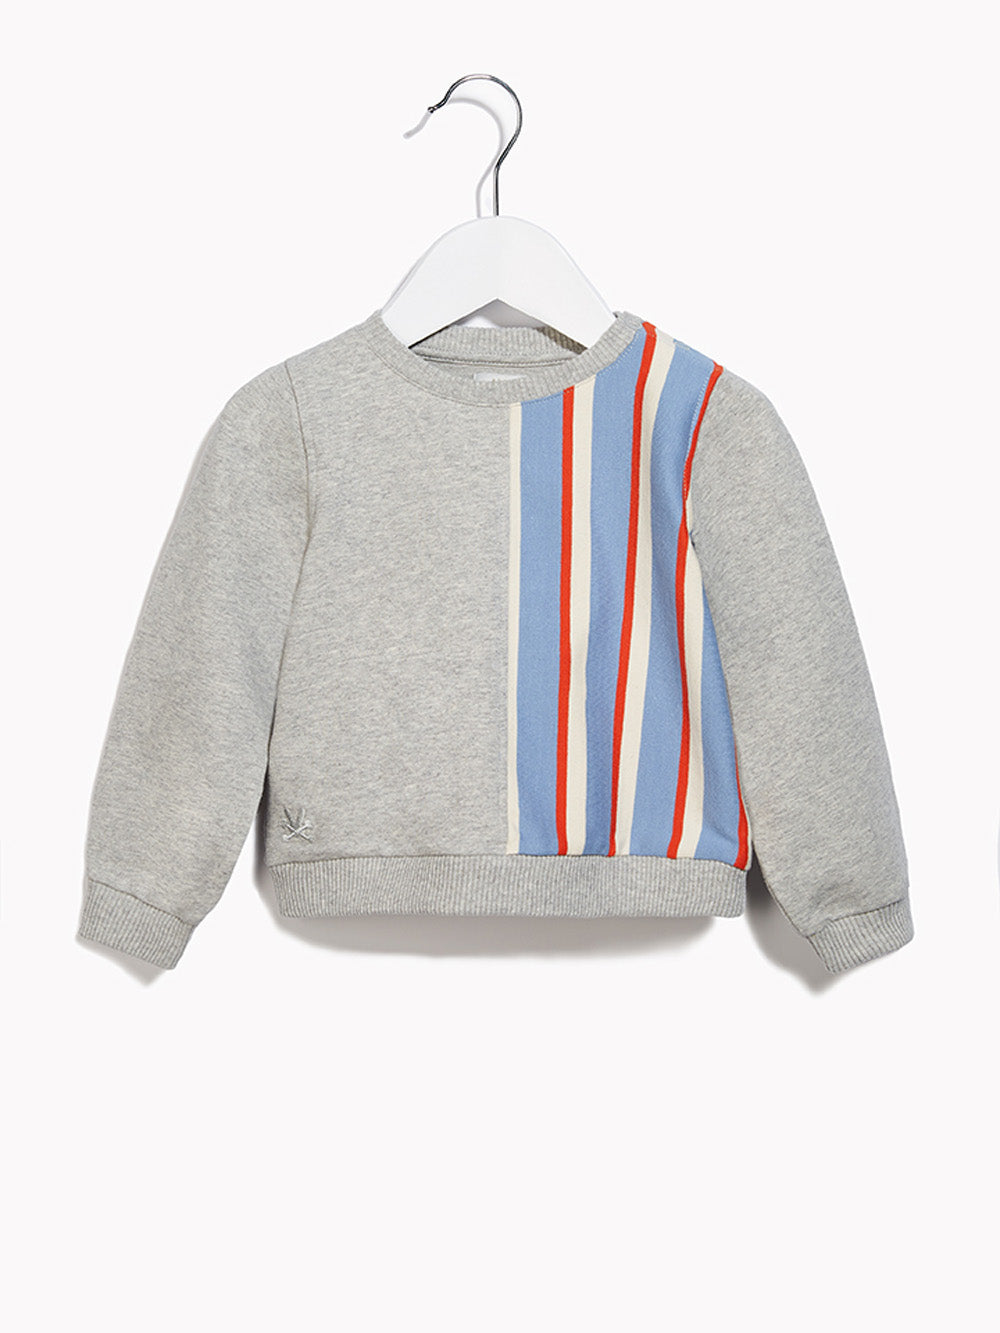 Little Boys Toddler Sweater Jumper - Long Sleeved Toddlers & Crawlers Over the Top Grey Marl & Collegiate Stripe Sweat Top